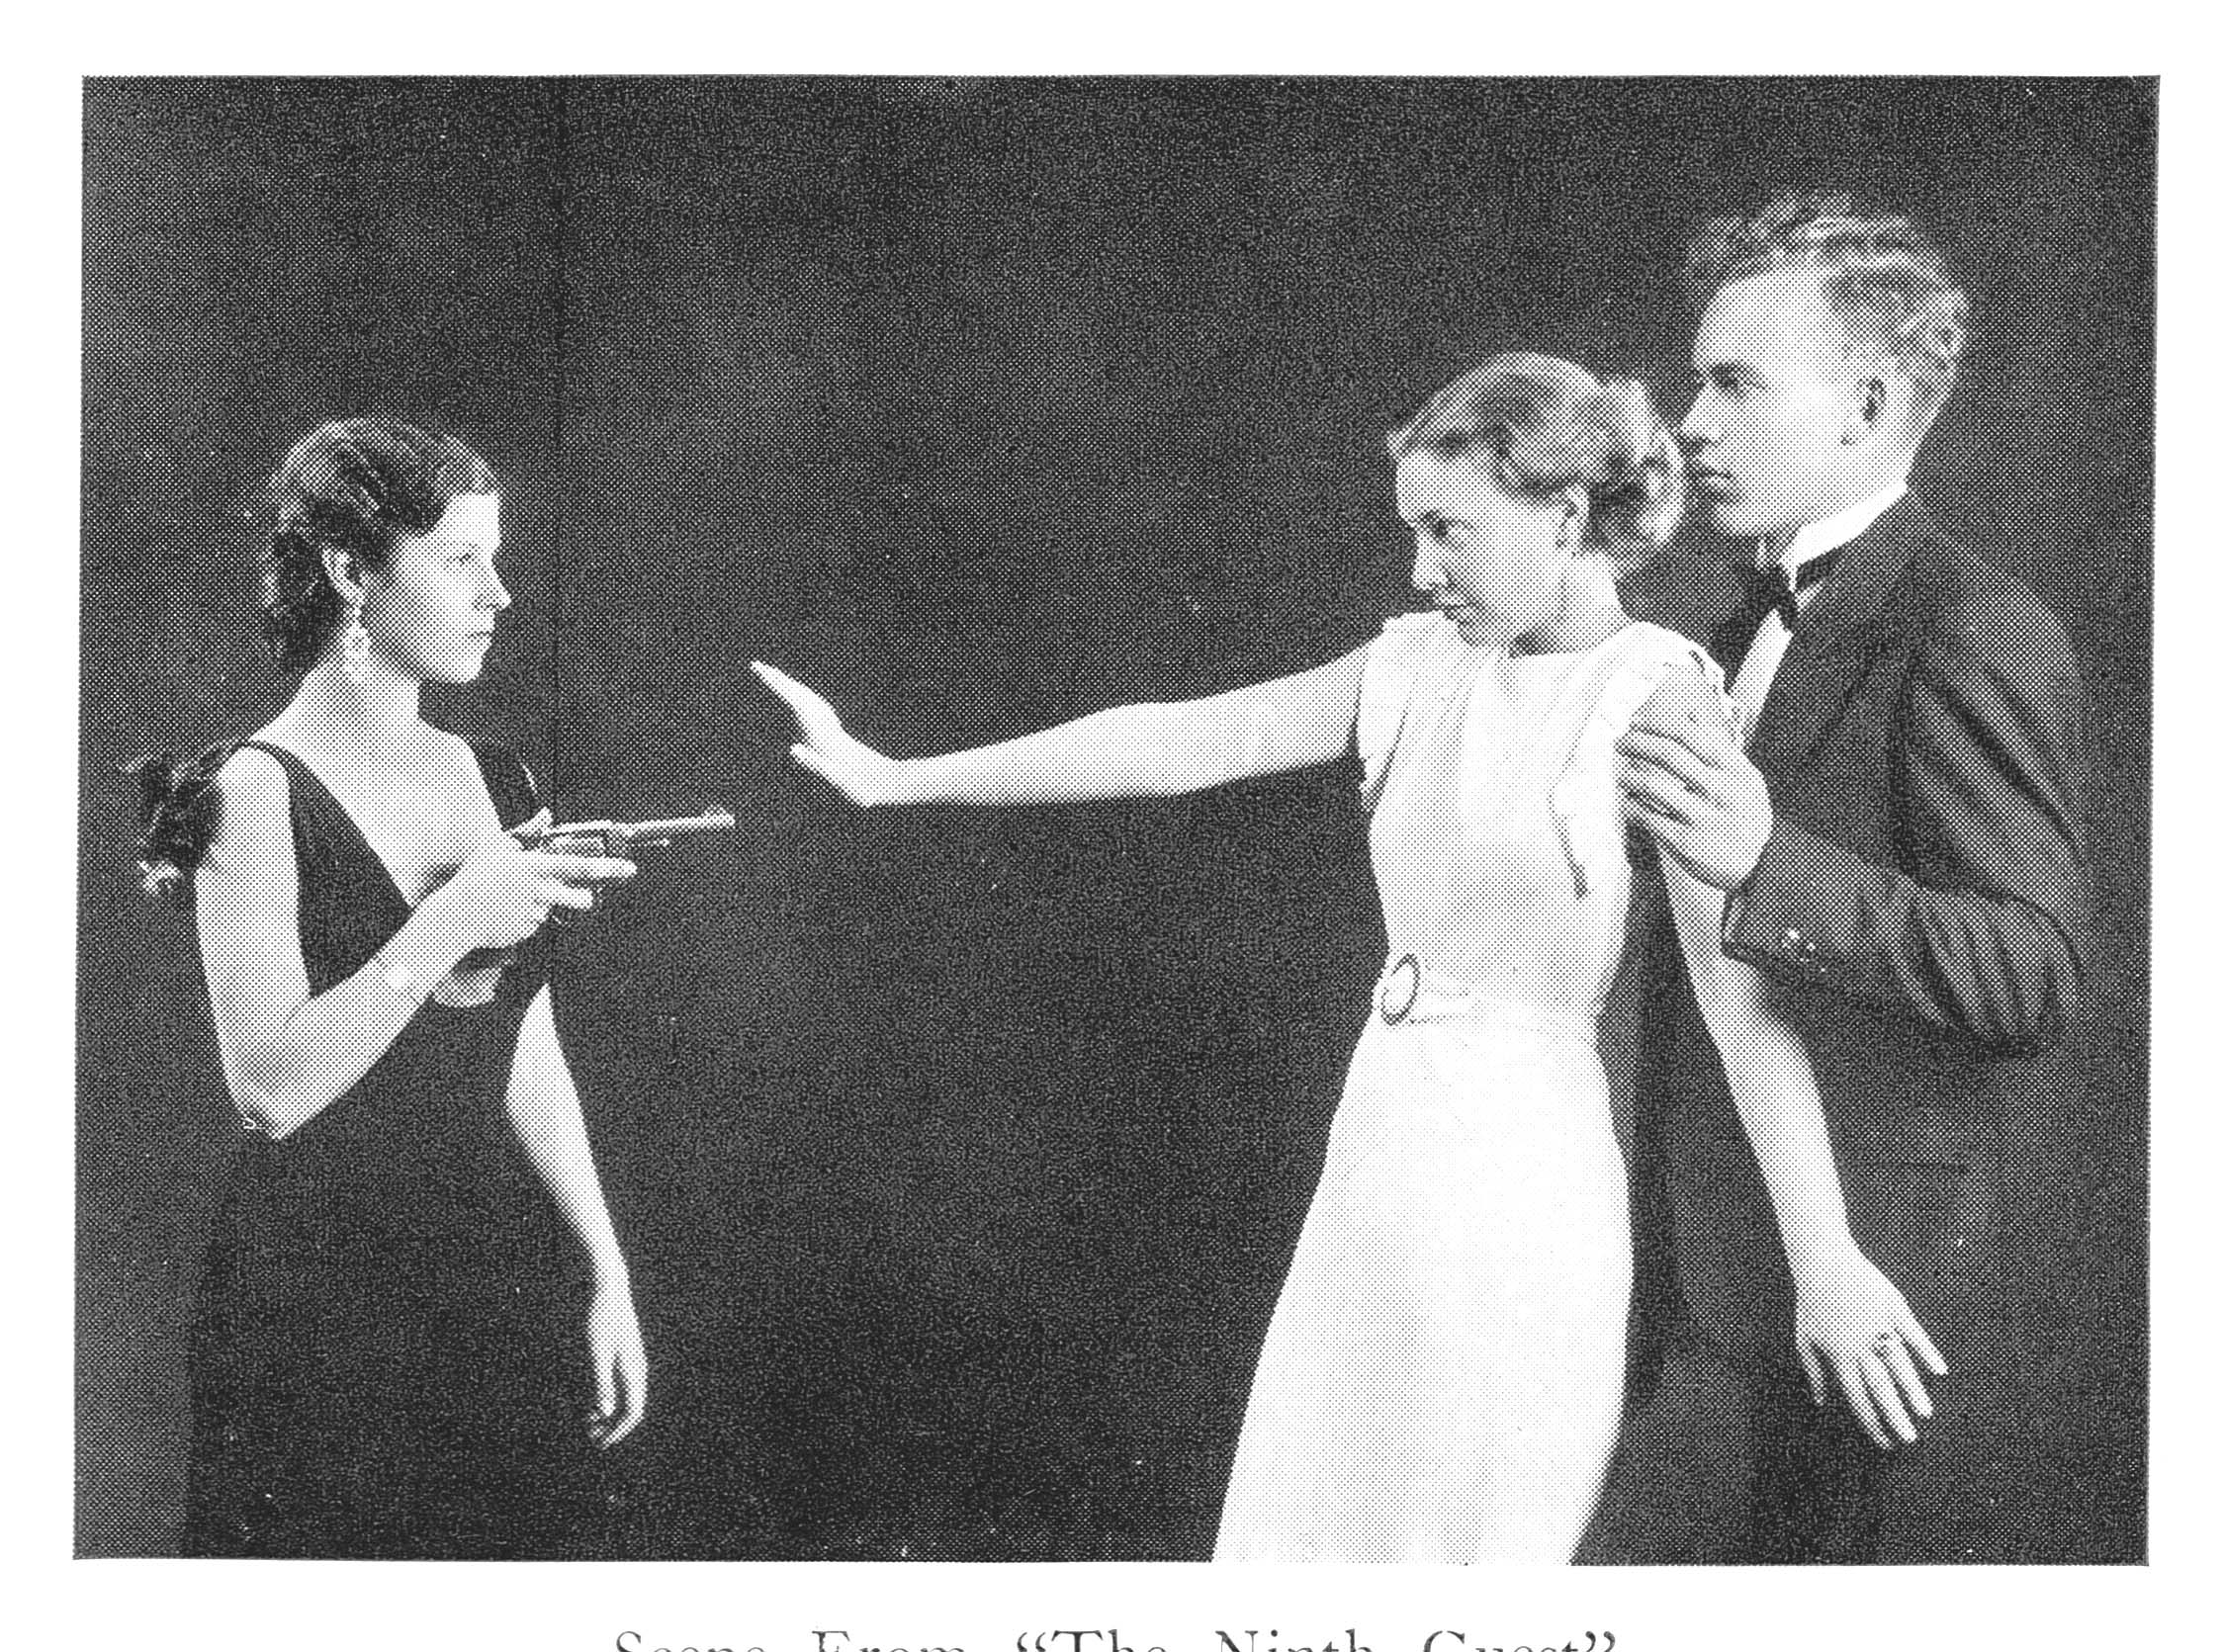 A woman points a prop gun at another woman and a man during a Drexel theater production